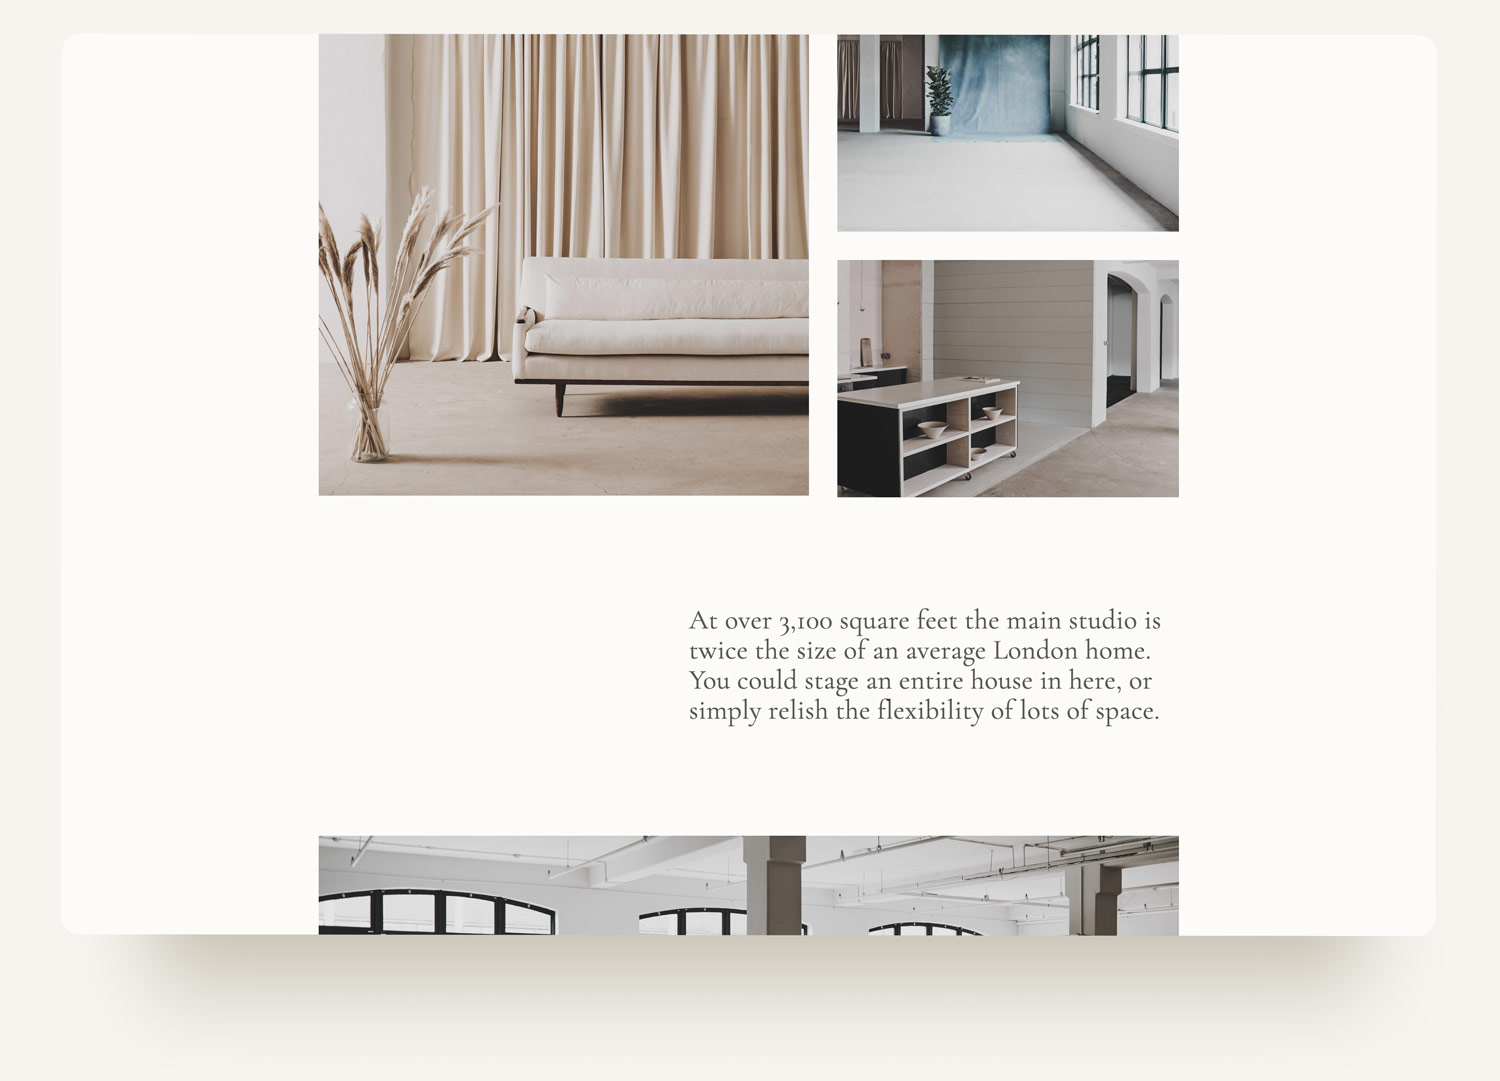 Archway Depot image grid pullquote web design on squarespace. Custom code and design by Brittany Hurdle beckon webeckon